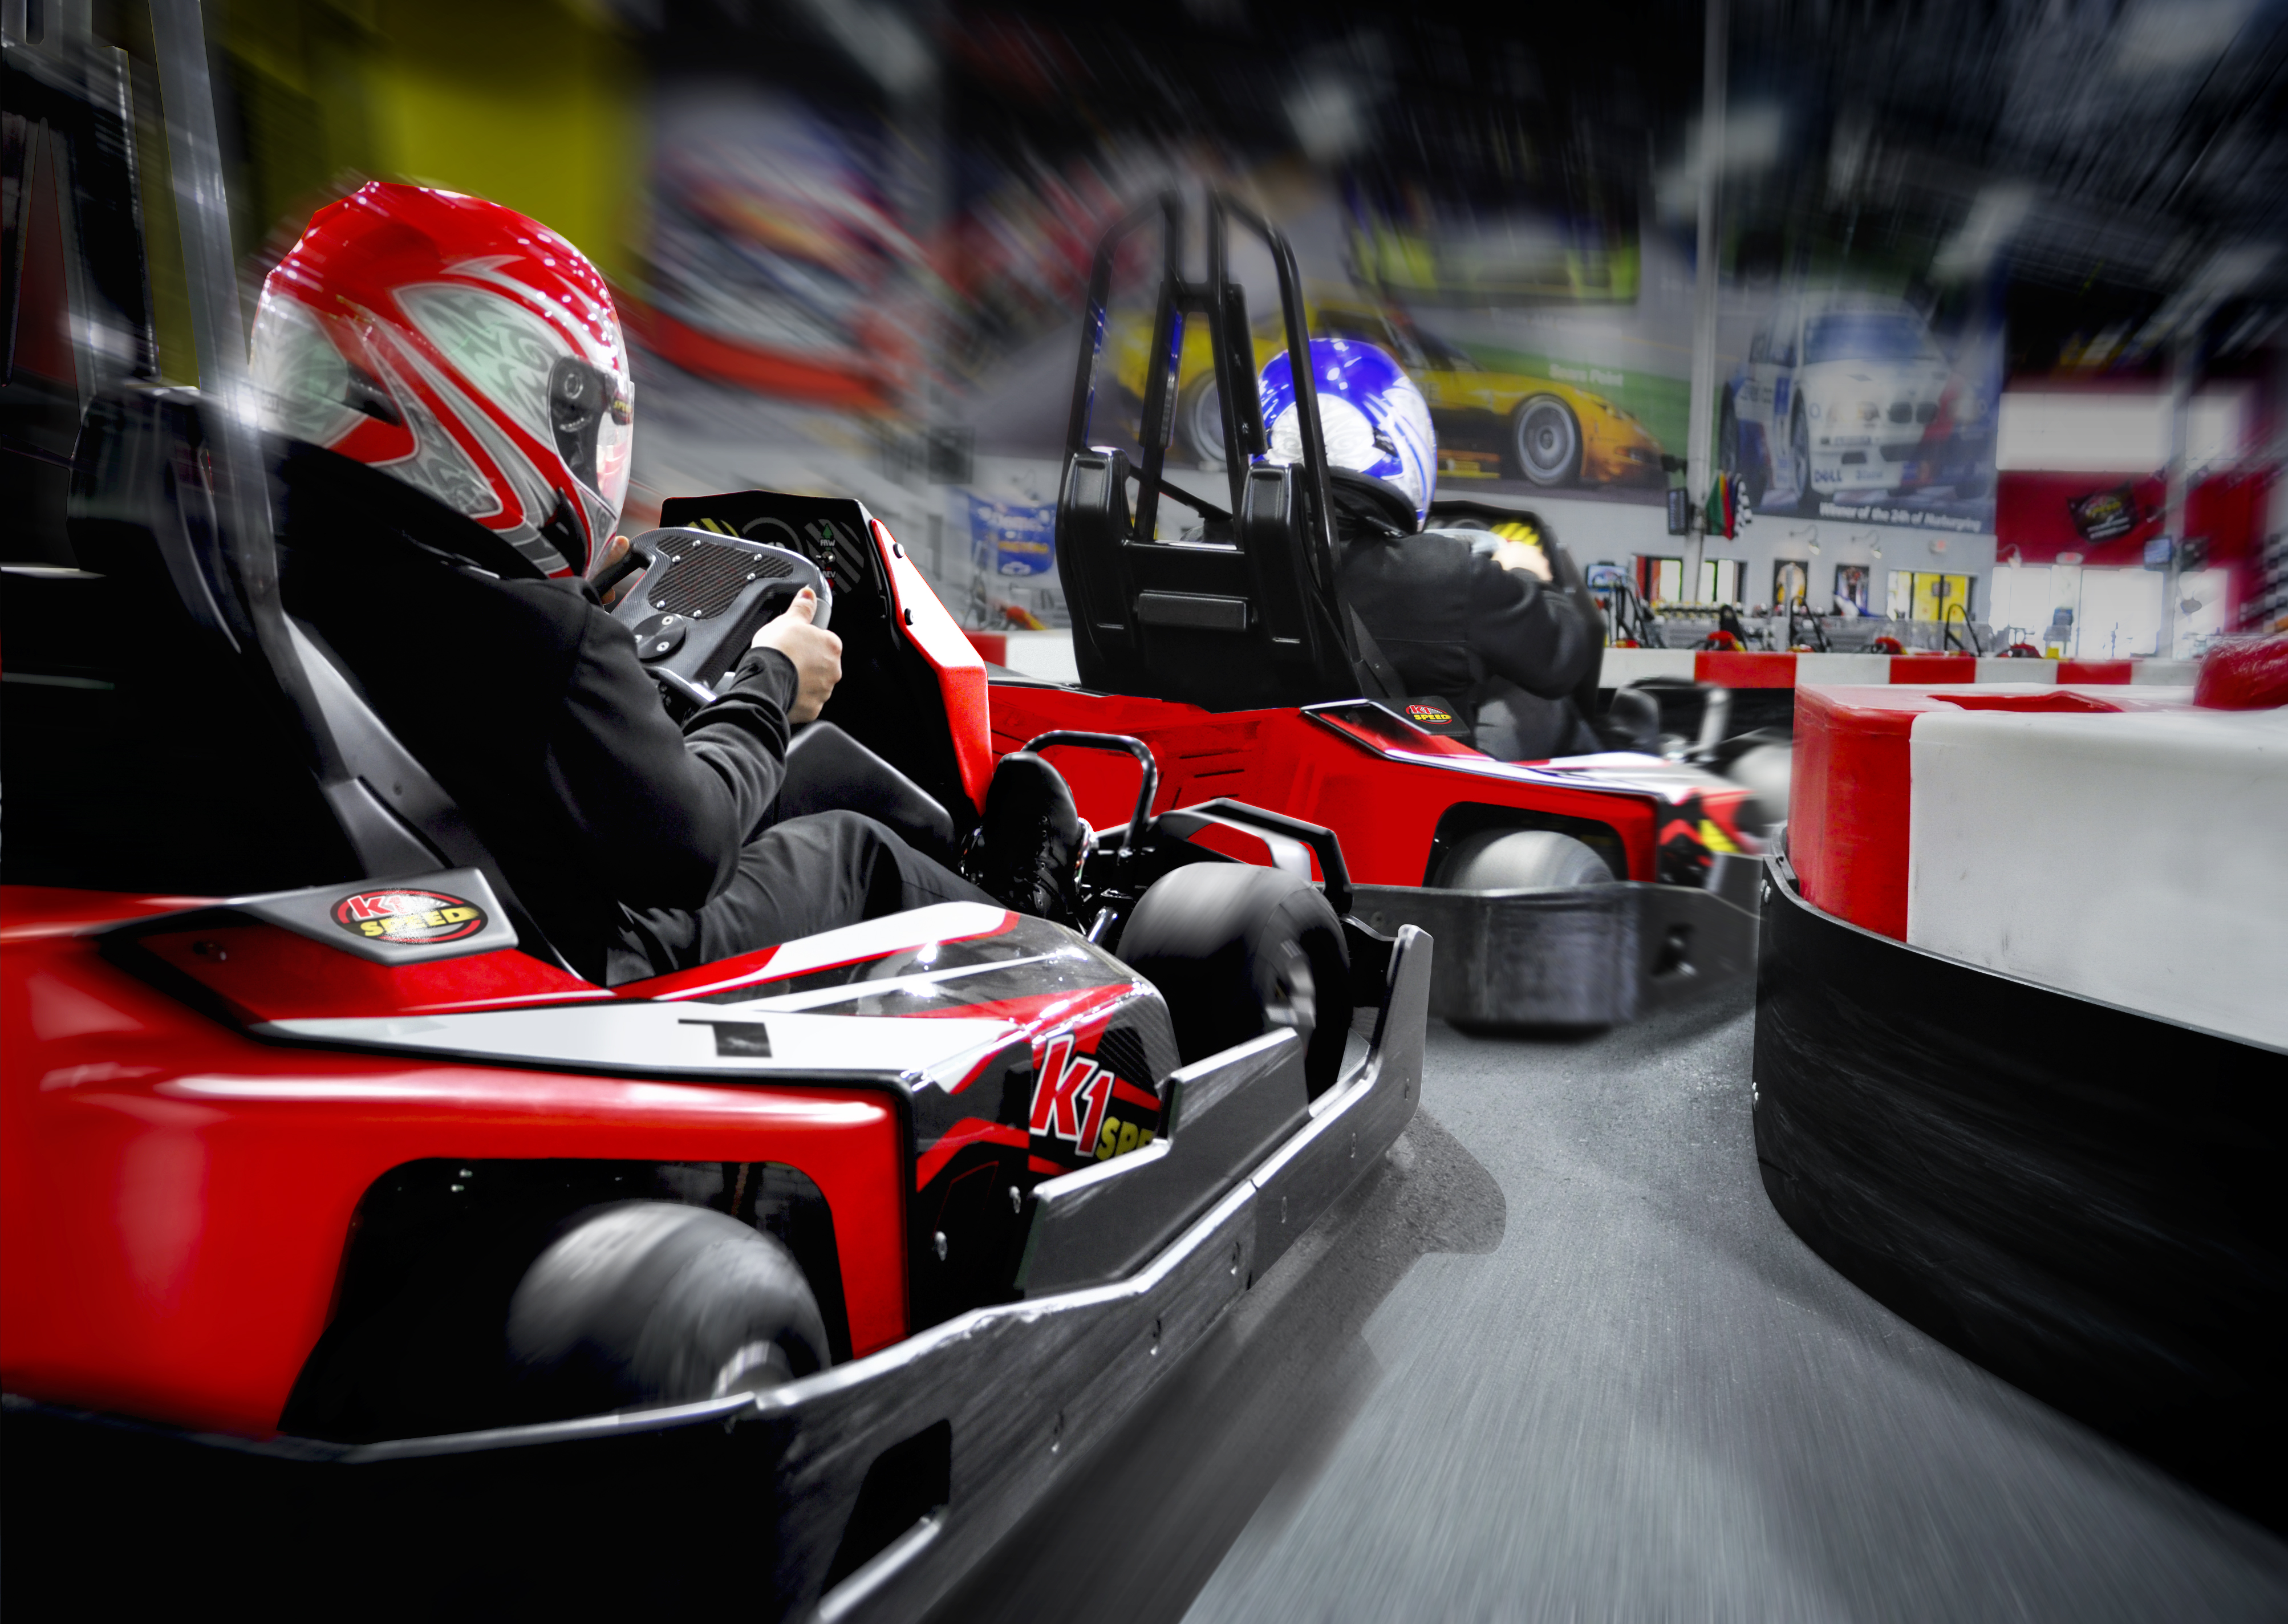 11 hours ago · K1 Speed Portland Now Open, Introduces Electric Go Kart Racing to Oregon. Oregon's first all-electric indoor go karting location has opened in Hillsboro, in the Greater Portland area.